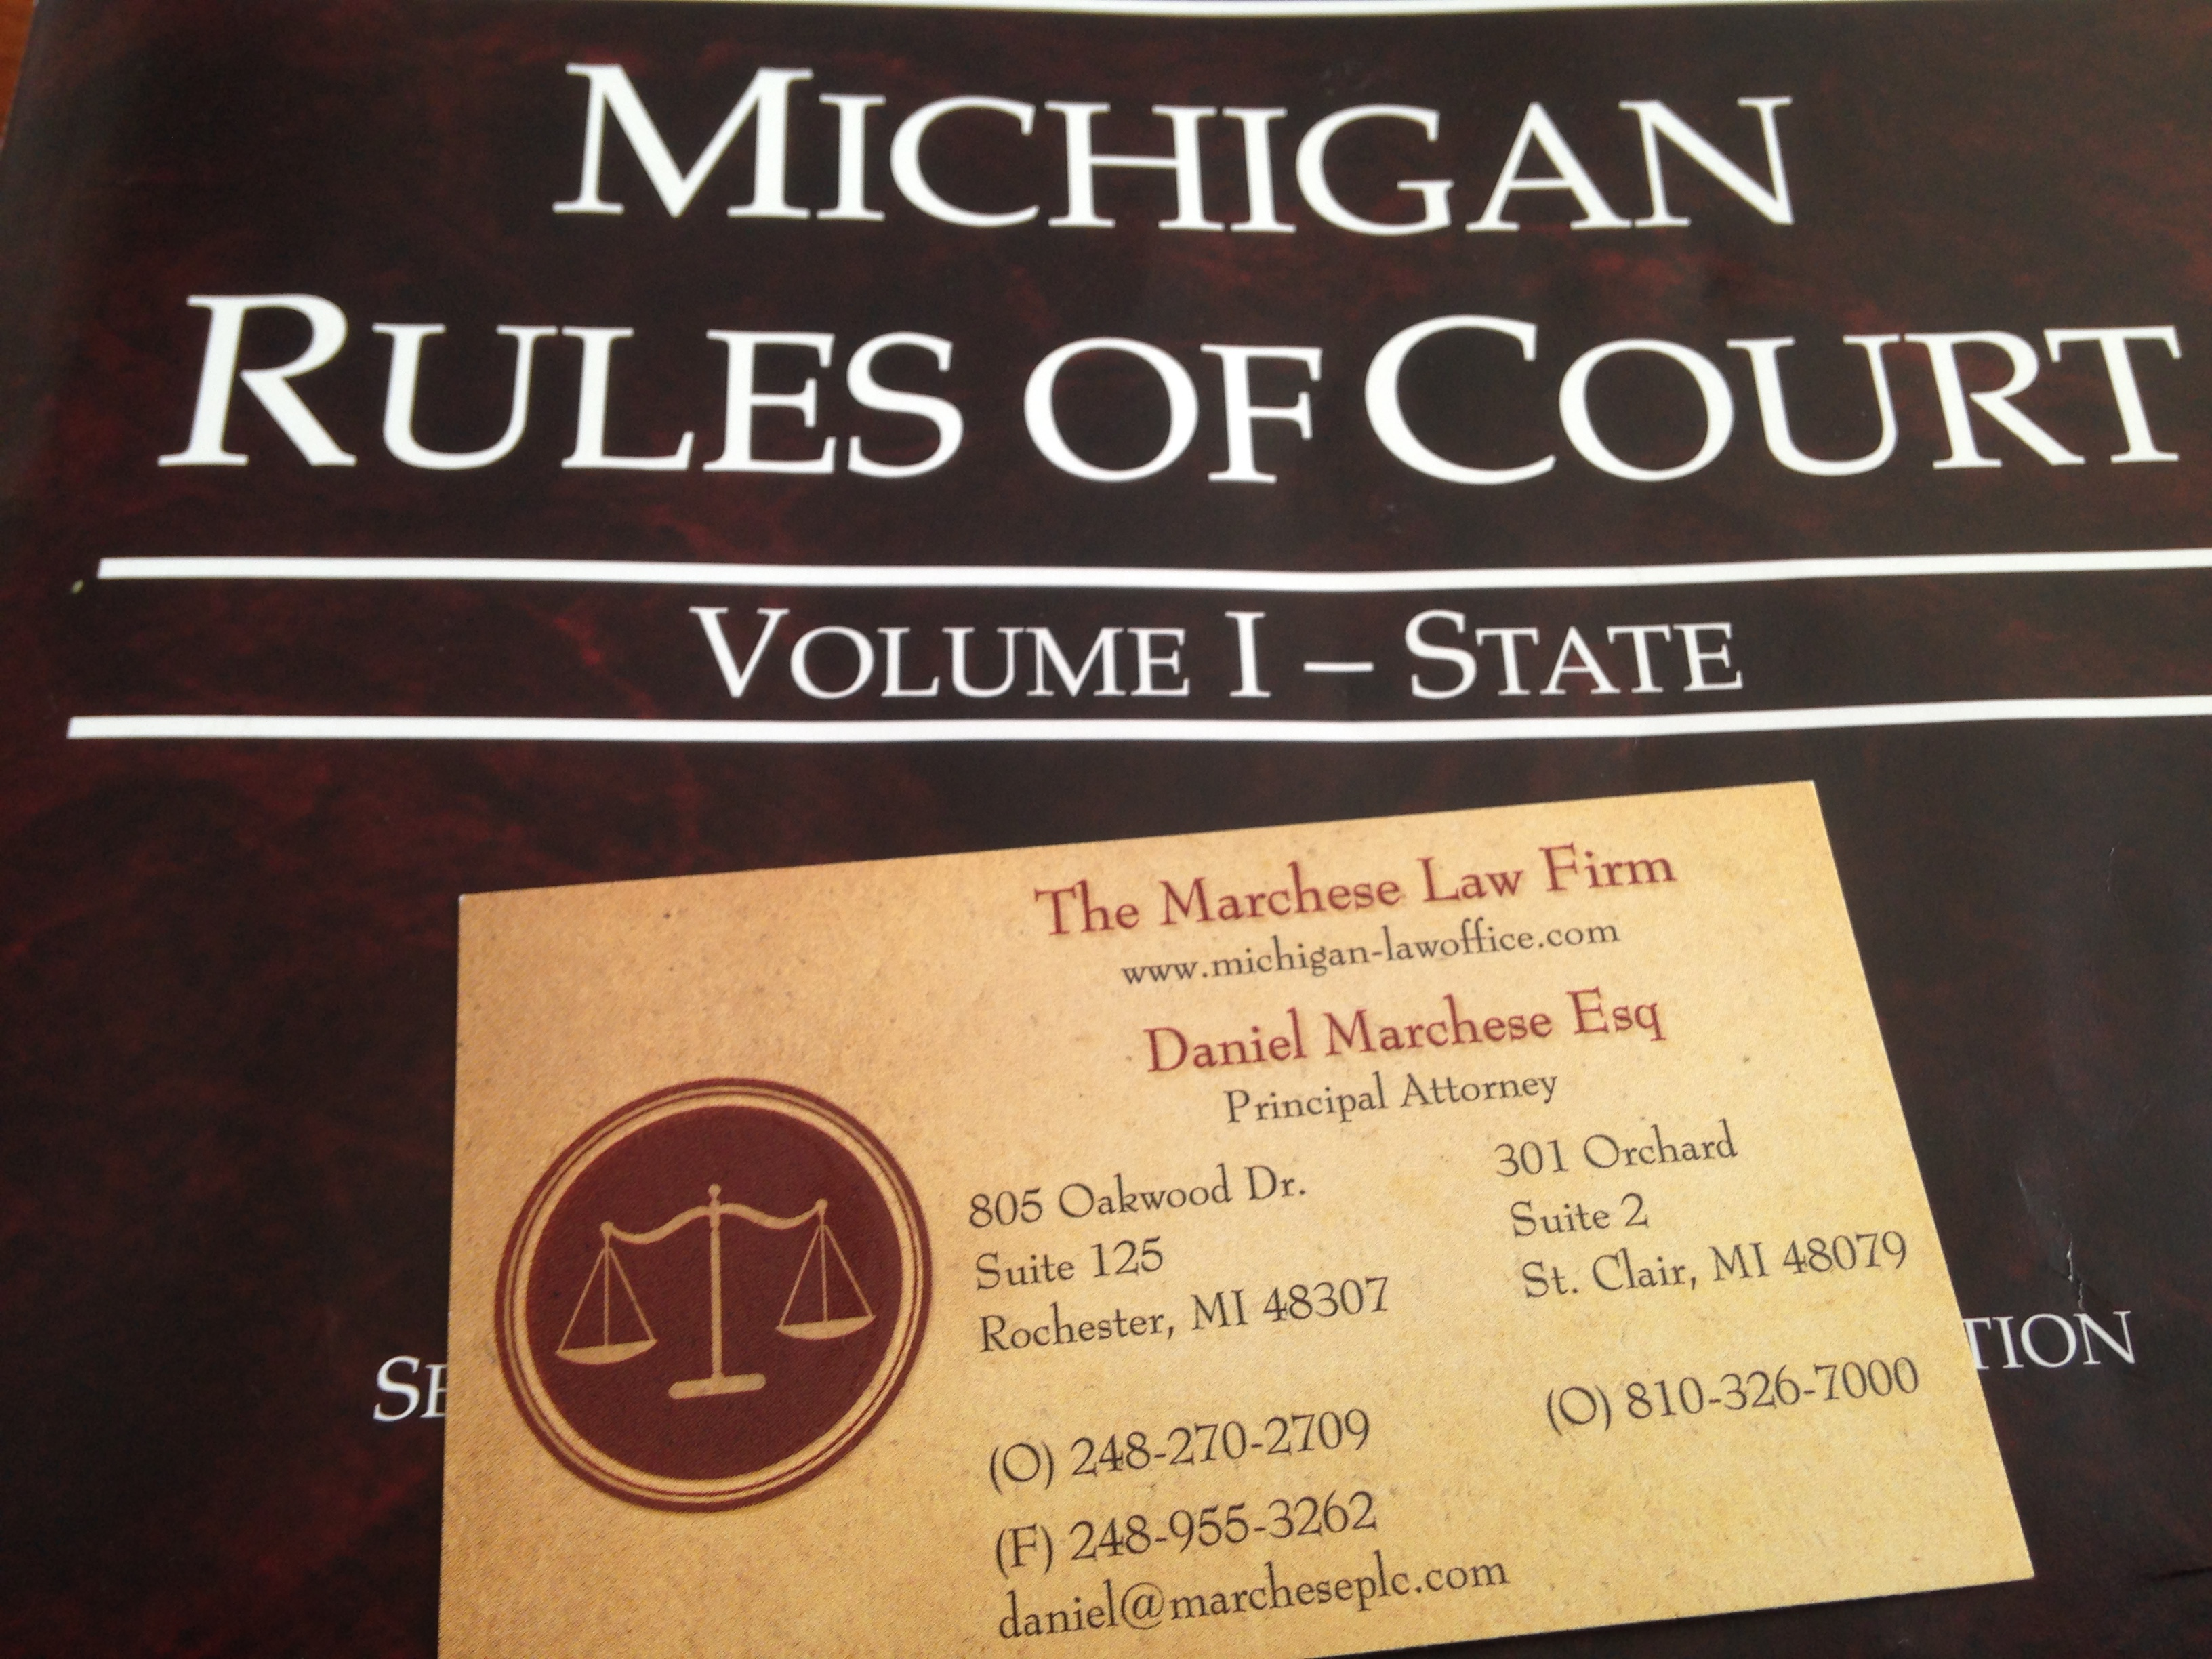 Major Stages Of A Lawsuit In The State Of Michigan